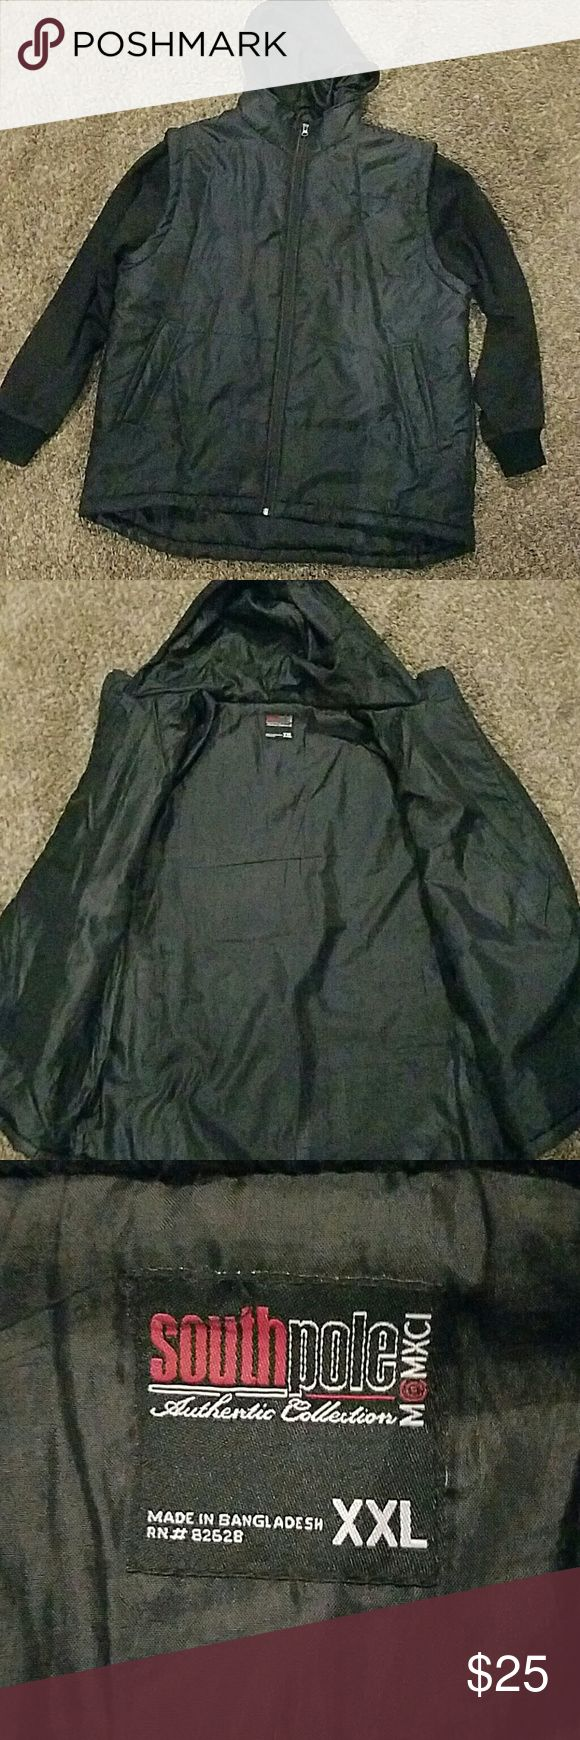 South Pole Jacket *Size XXL *Used a handful of times *Outer parts of the sleeves and hood are cloth, the whole inside of the jacket is nylon to keep the cold out, nice and light weight :) *2 pockets outside, 1 pocket inside South Pole Jackets & Coats